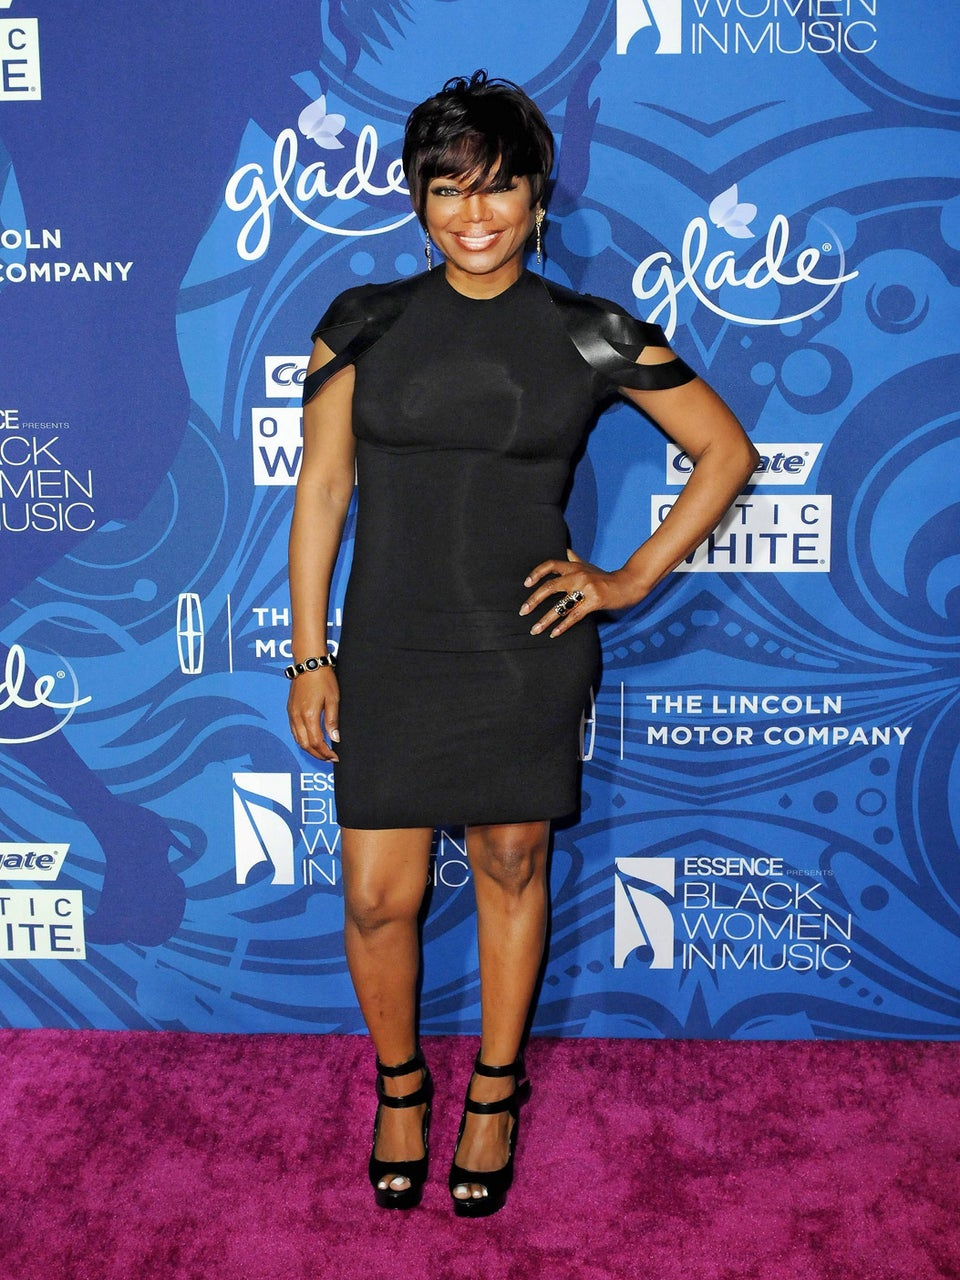 Michel'le Biopic is Coming to the Small Screen